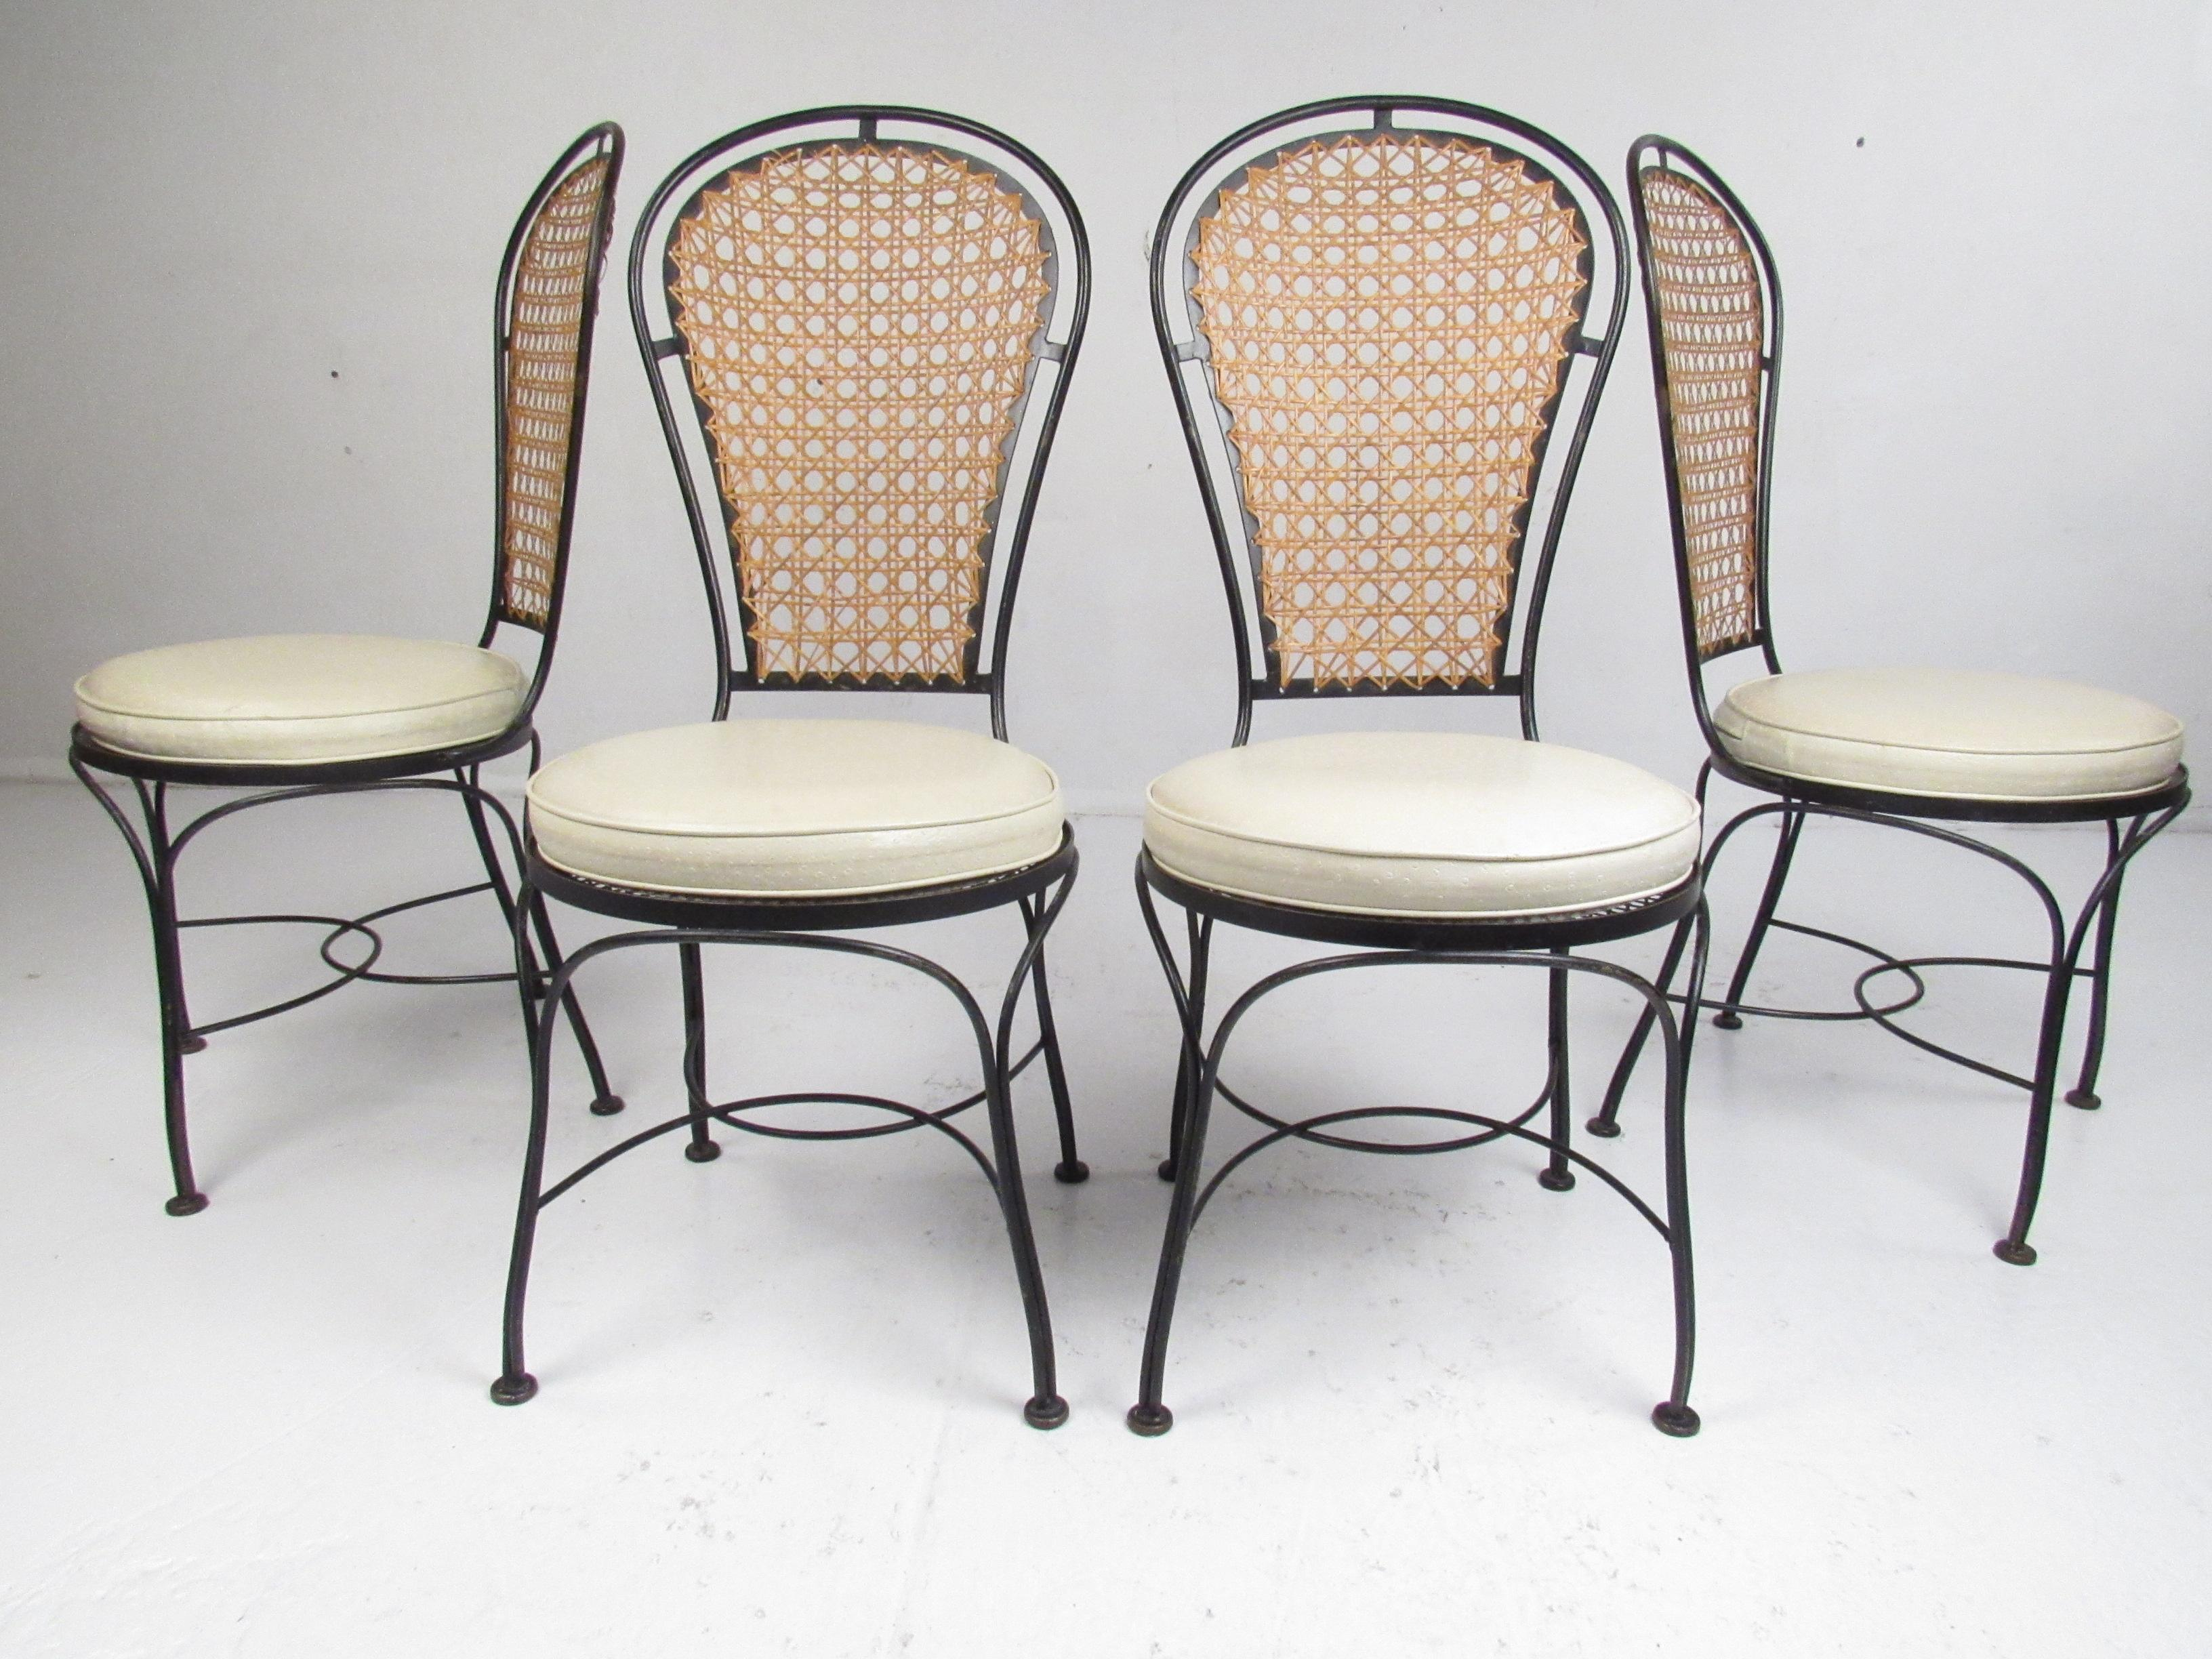 wrought iron dining chairs desk chair and set of four mid century with a cane backrest for sale